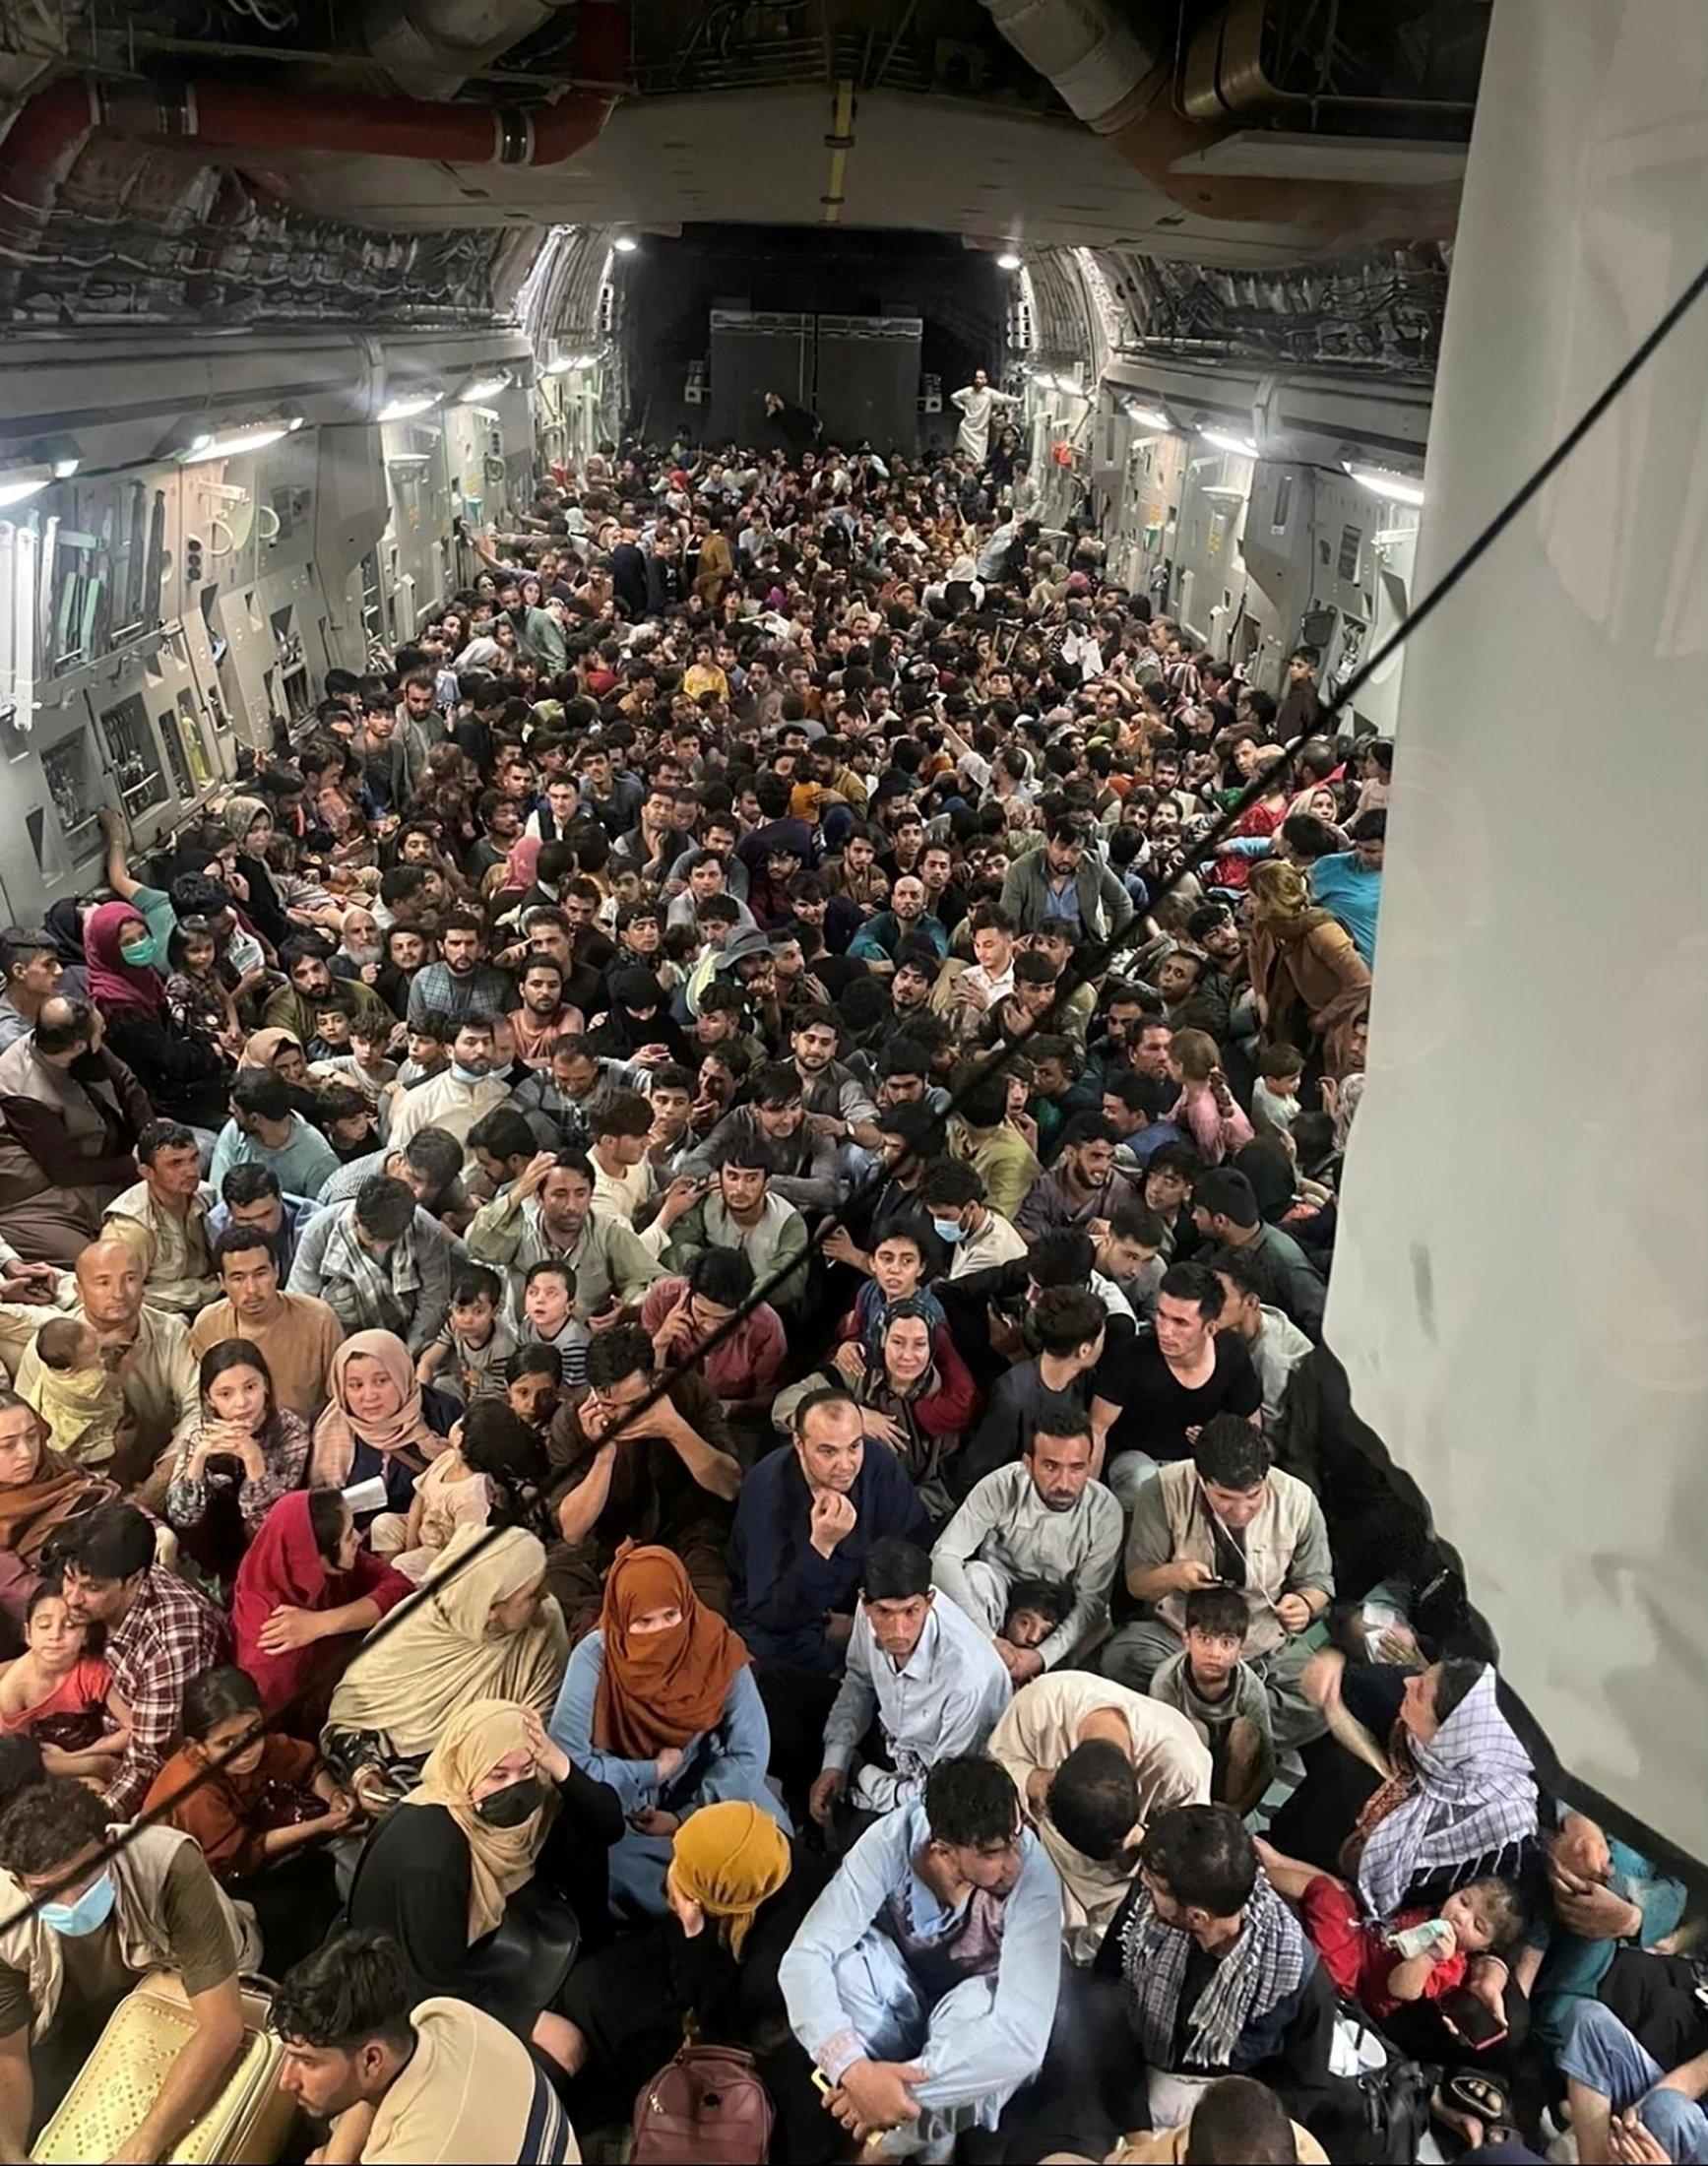 Evacuees crowd the interior of a U.S. Air Force C-17 Globemaster III transport aircraft, carrying some 640 Afghans to Qatar from Kabul, Afghanistan, Aug.15, 2021. (REUTERS Photo)